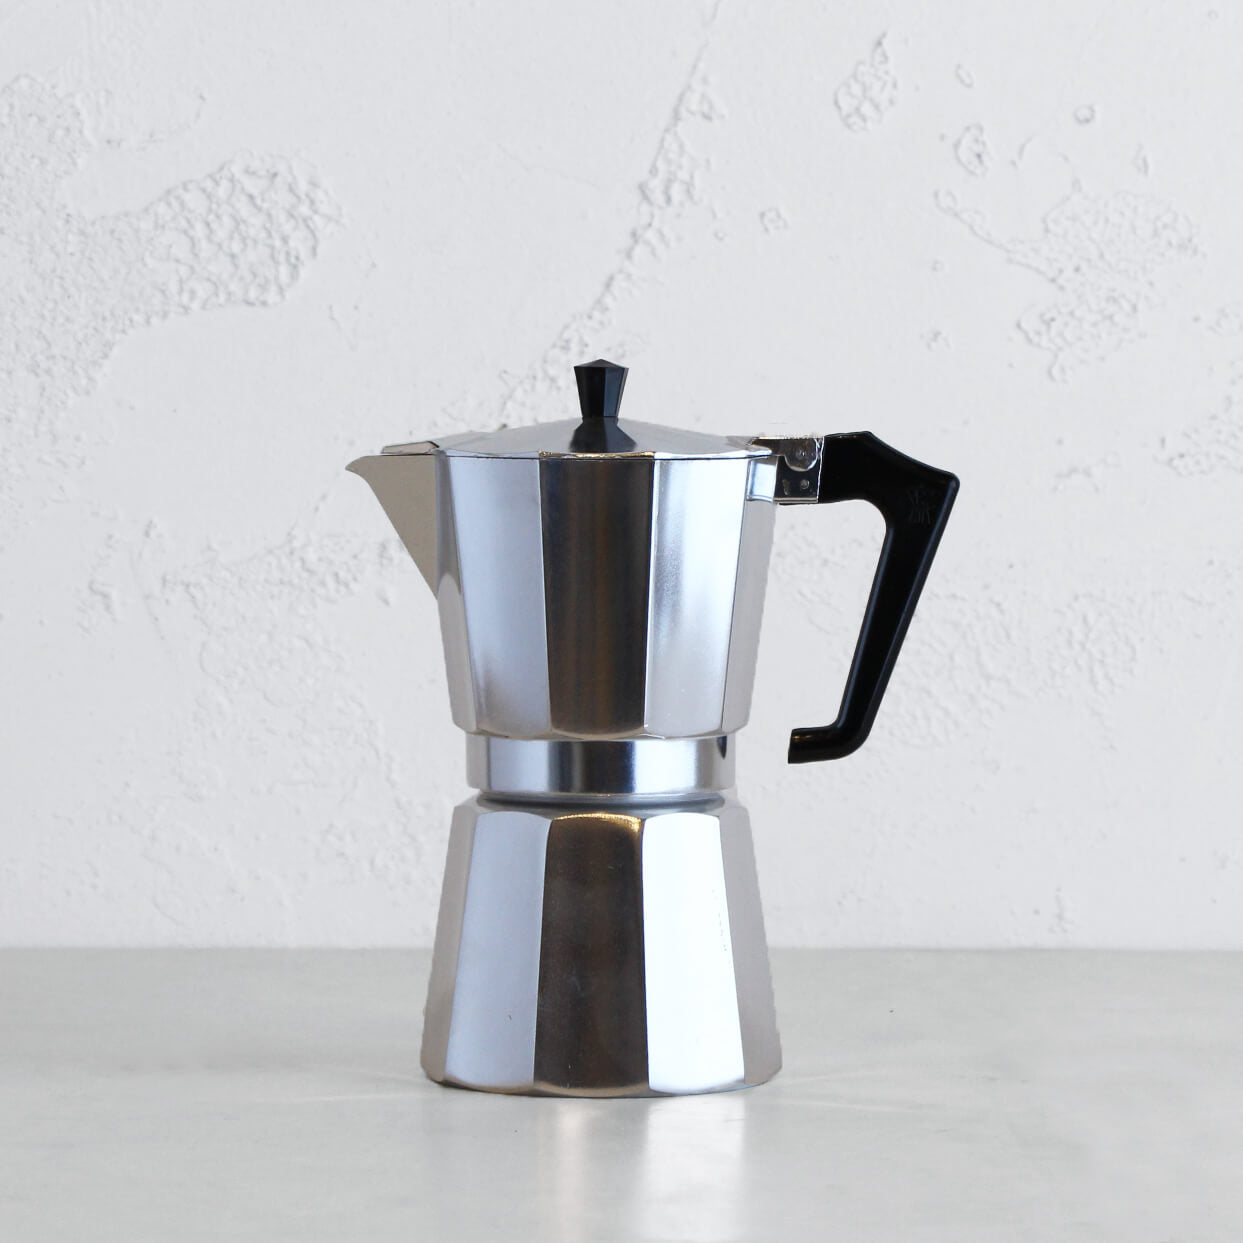 PEZZETTI ITALEXPRESS ITALIAN COFFEE MAKER  |  9 CUP  |  STEEL